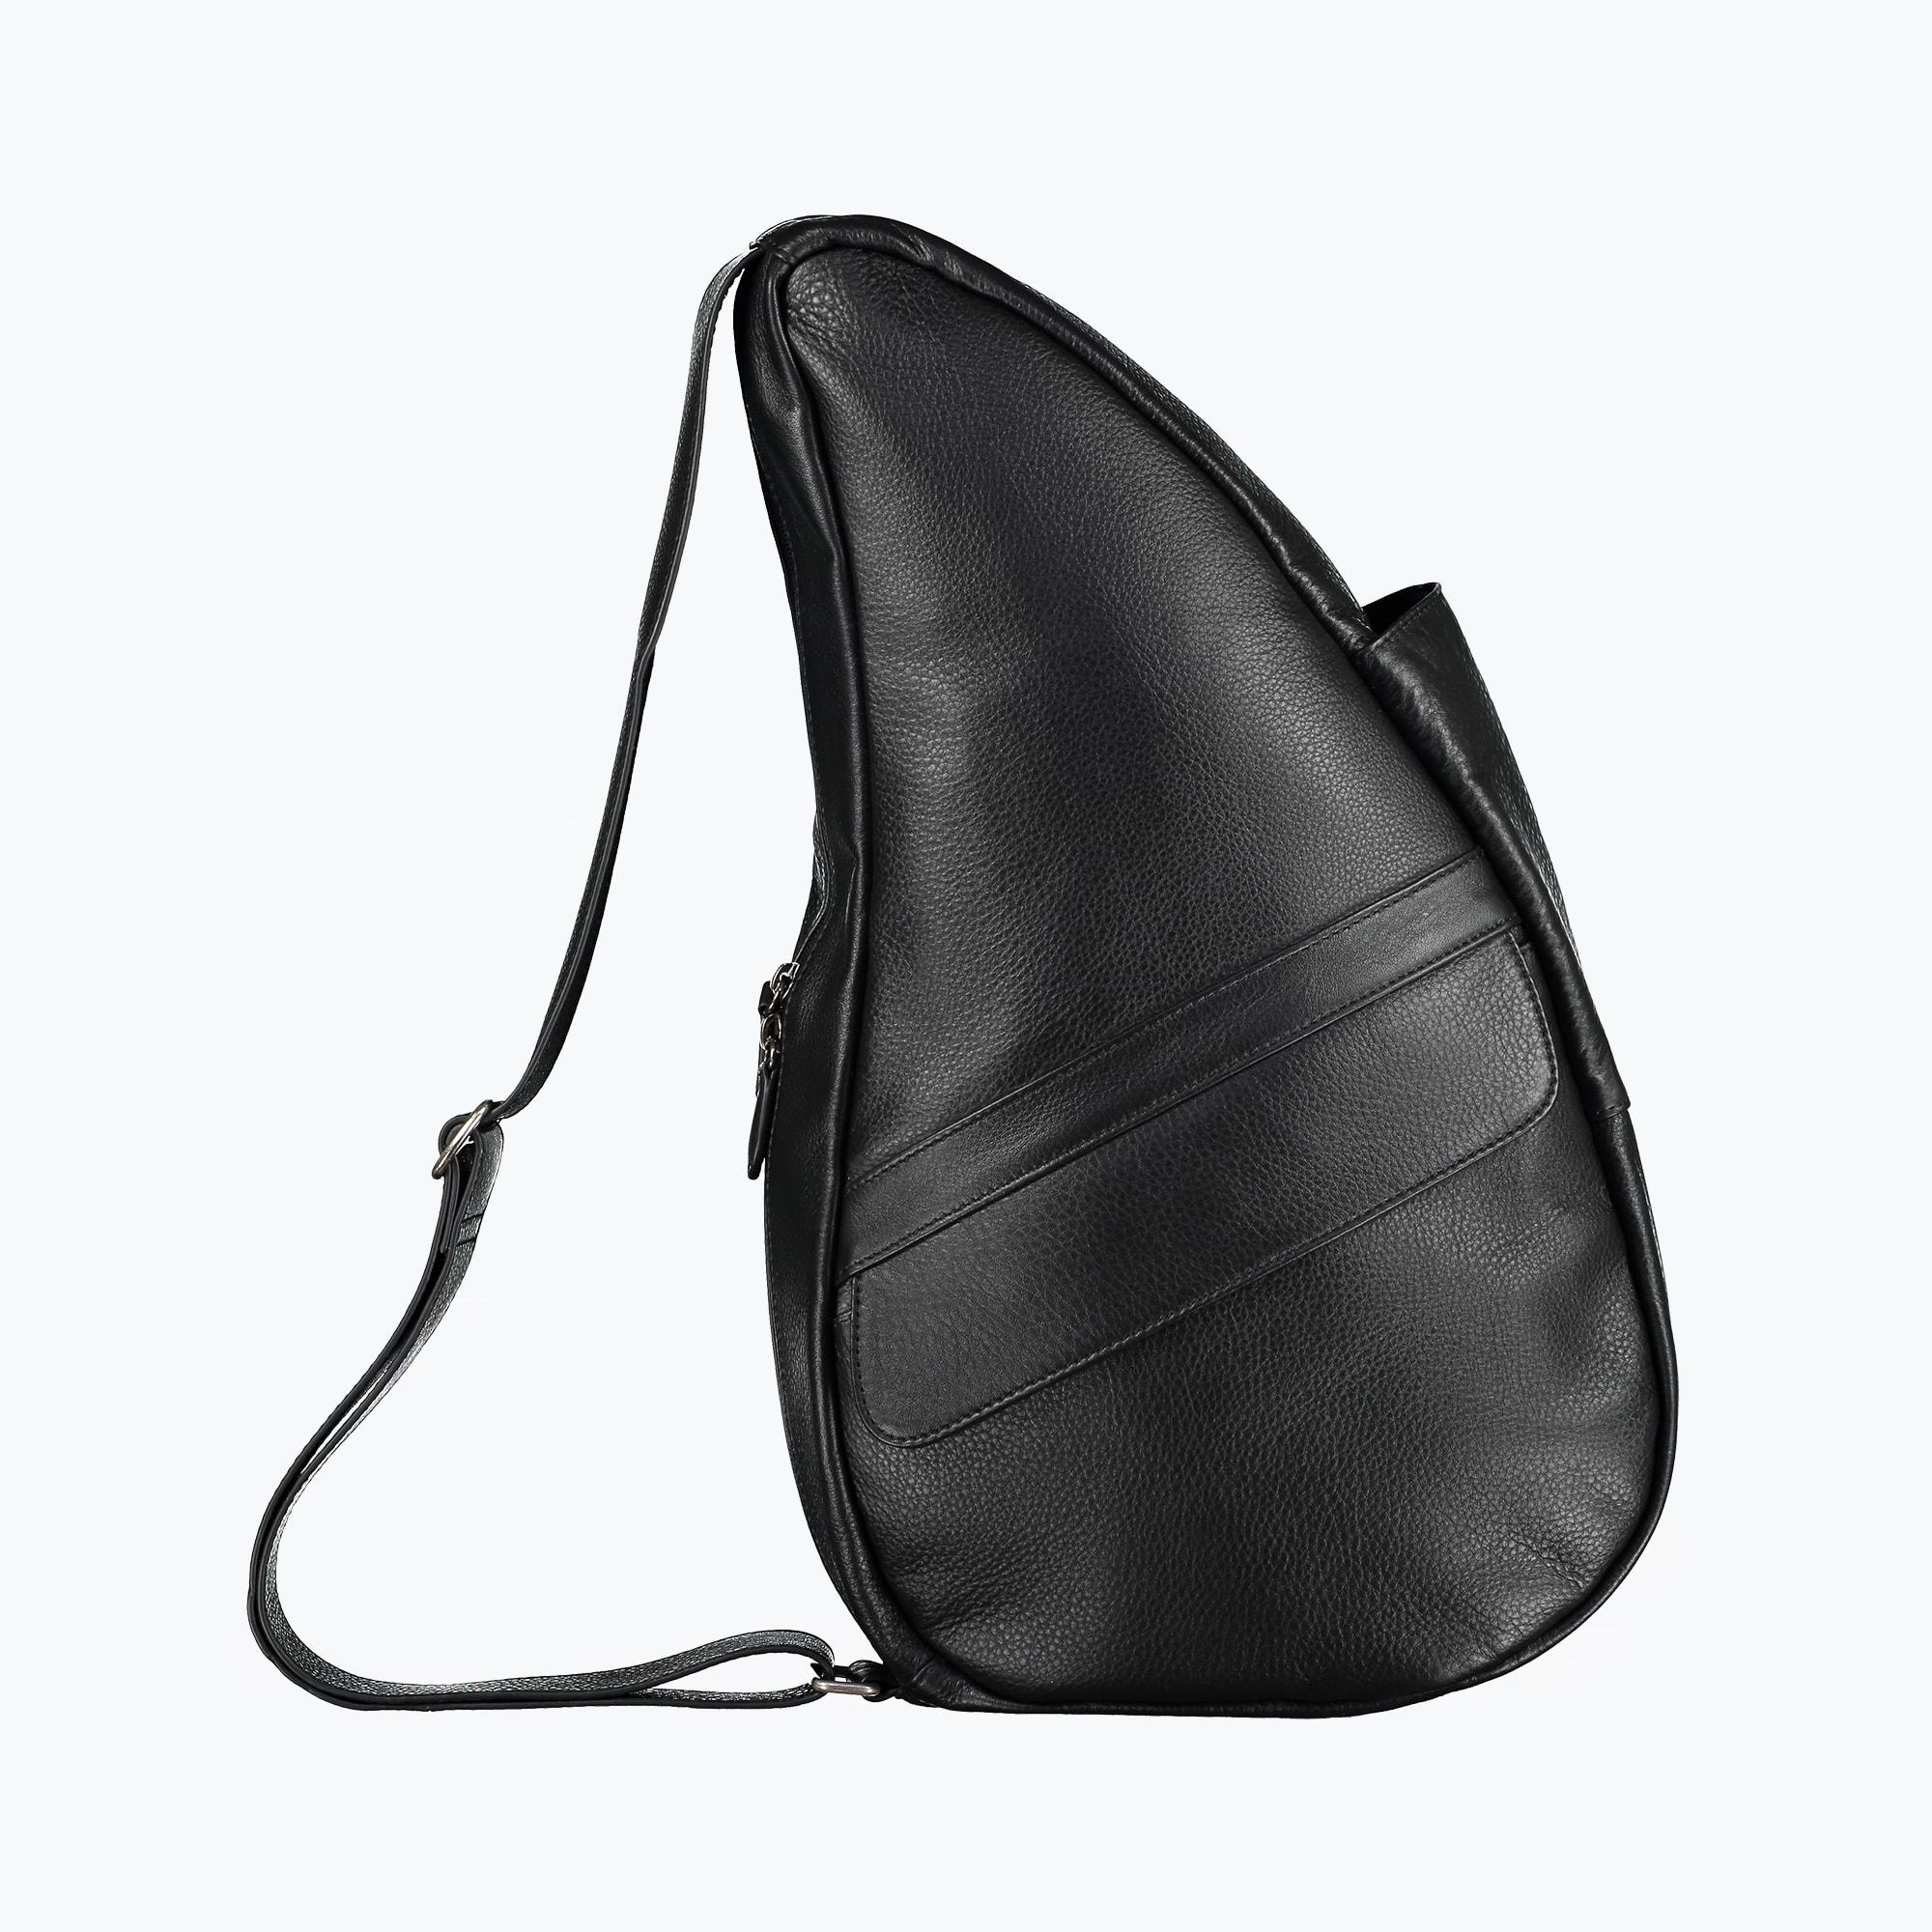 a9a94ea93d Leather Black M by The Healthy Back Bag